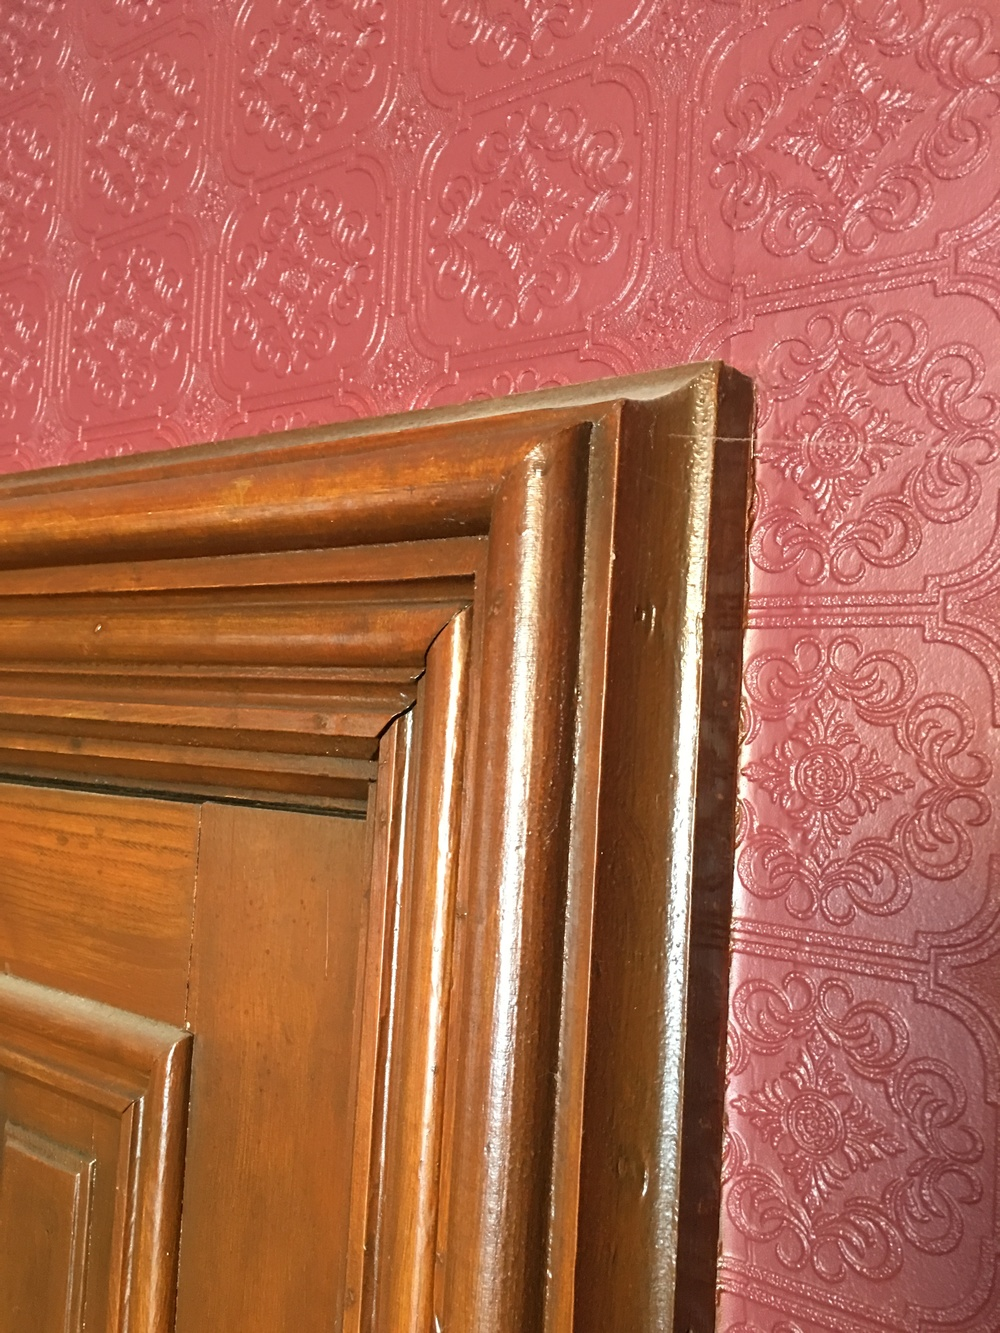 This closeup of the dining room door shows that, while it is also built out in a somewhat ornate fashion, it does not continue to radiate outward beyond the edge of the frame.